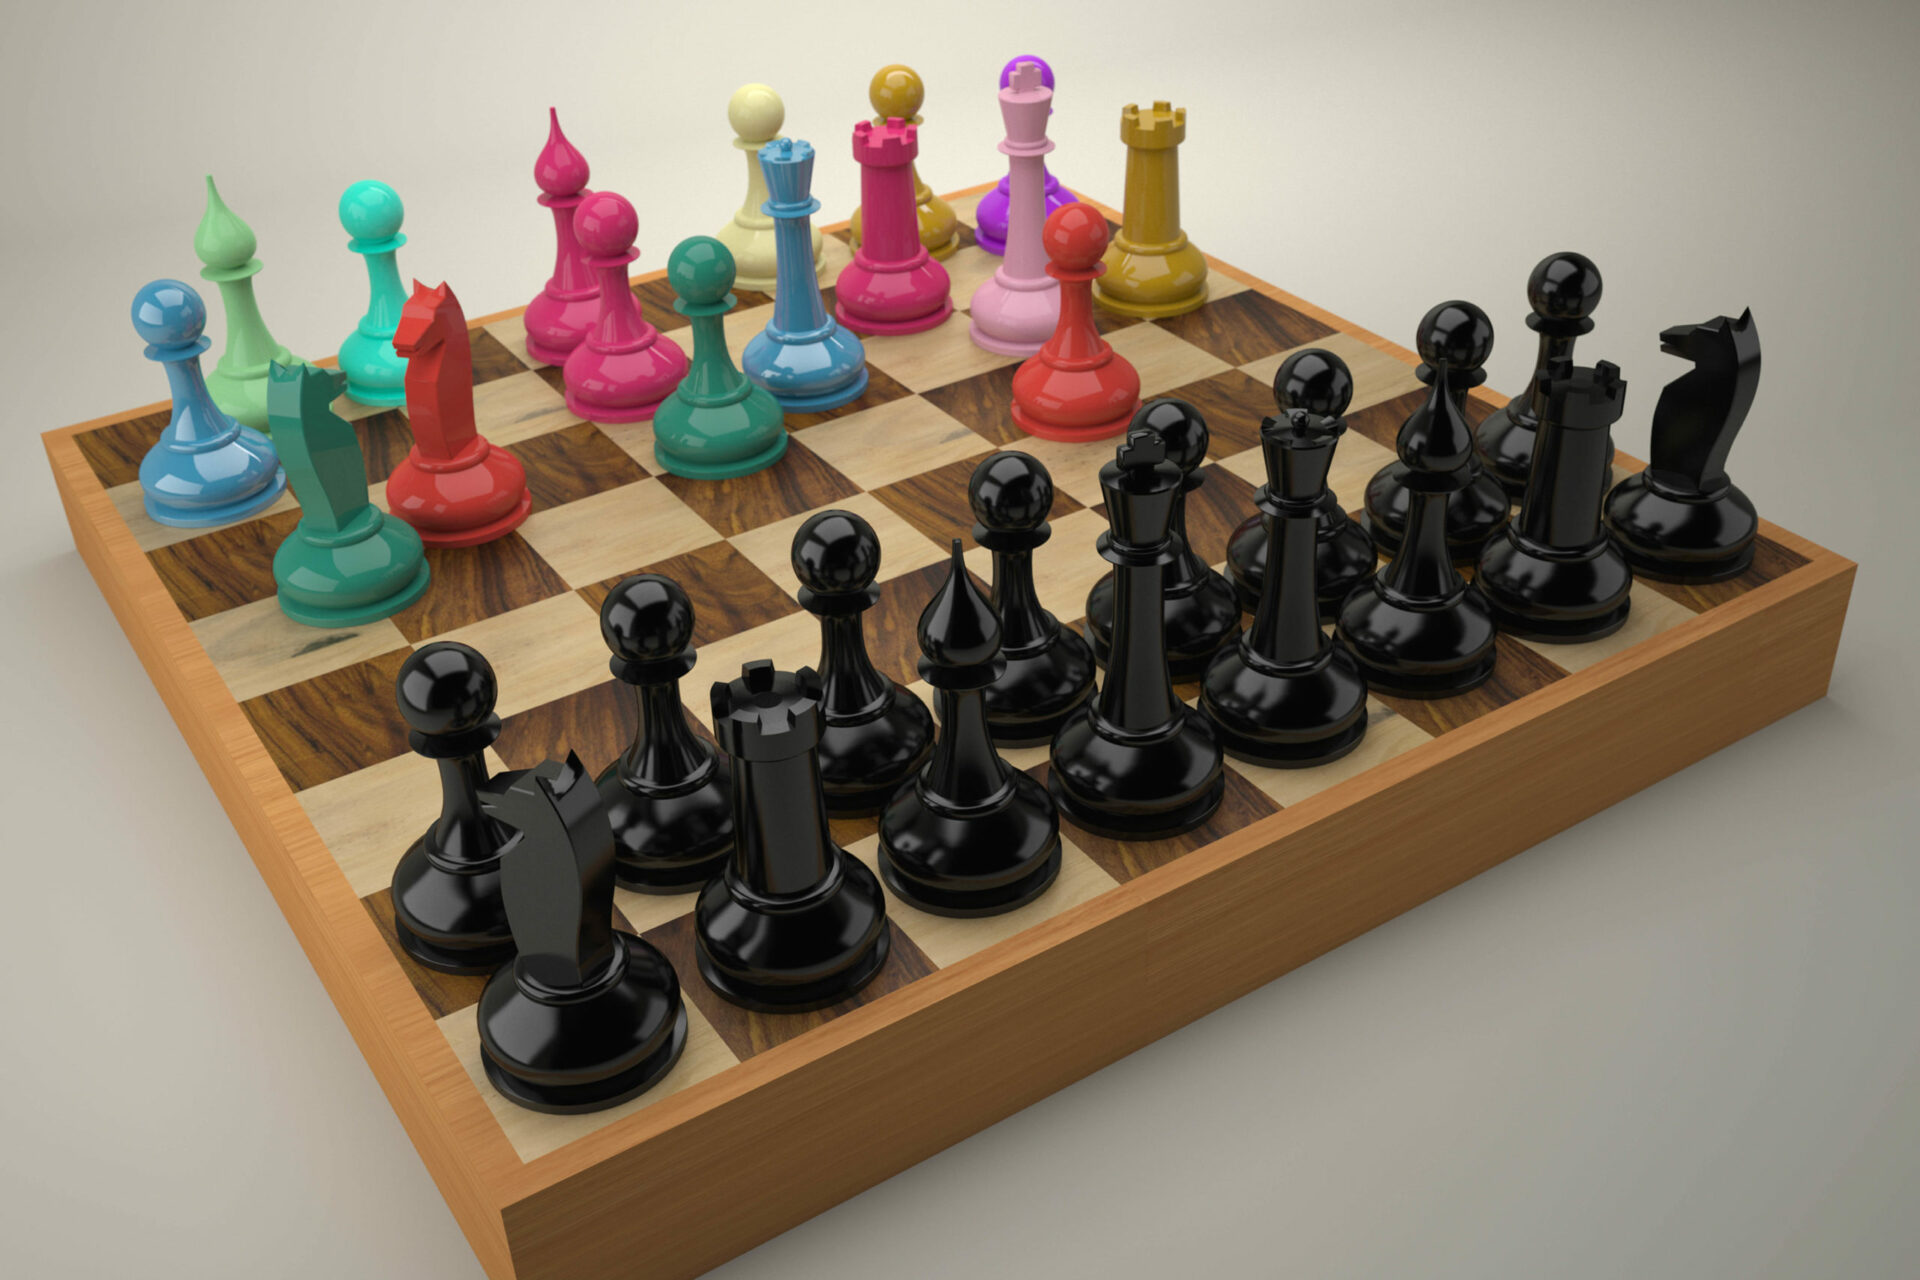 Disordered,Color,Chess,Team,Vs.,Regular,Black,Team